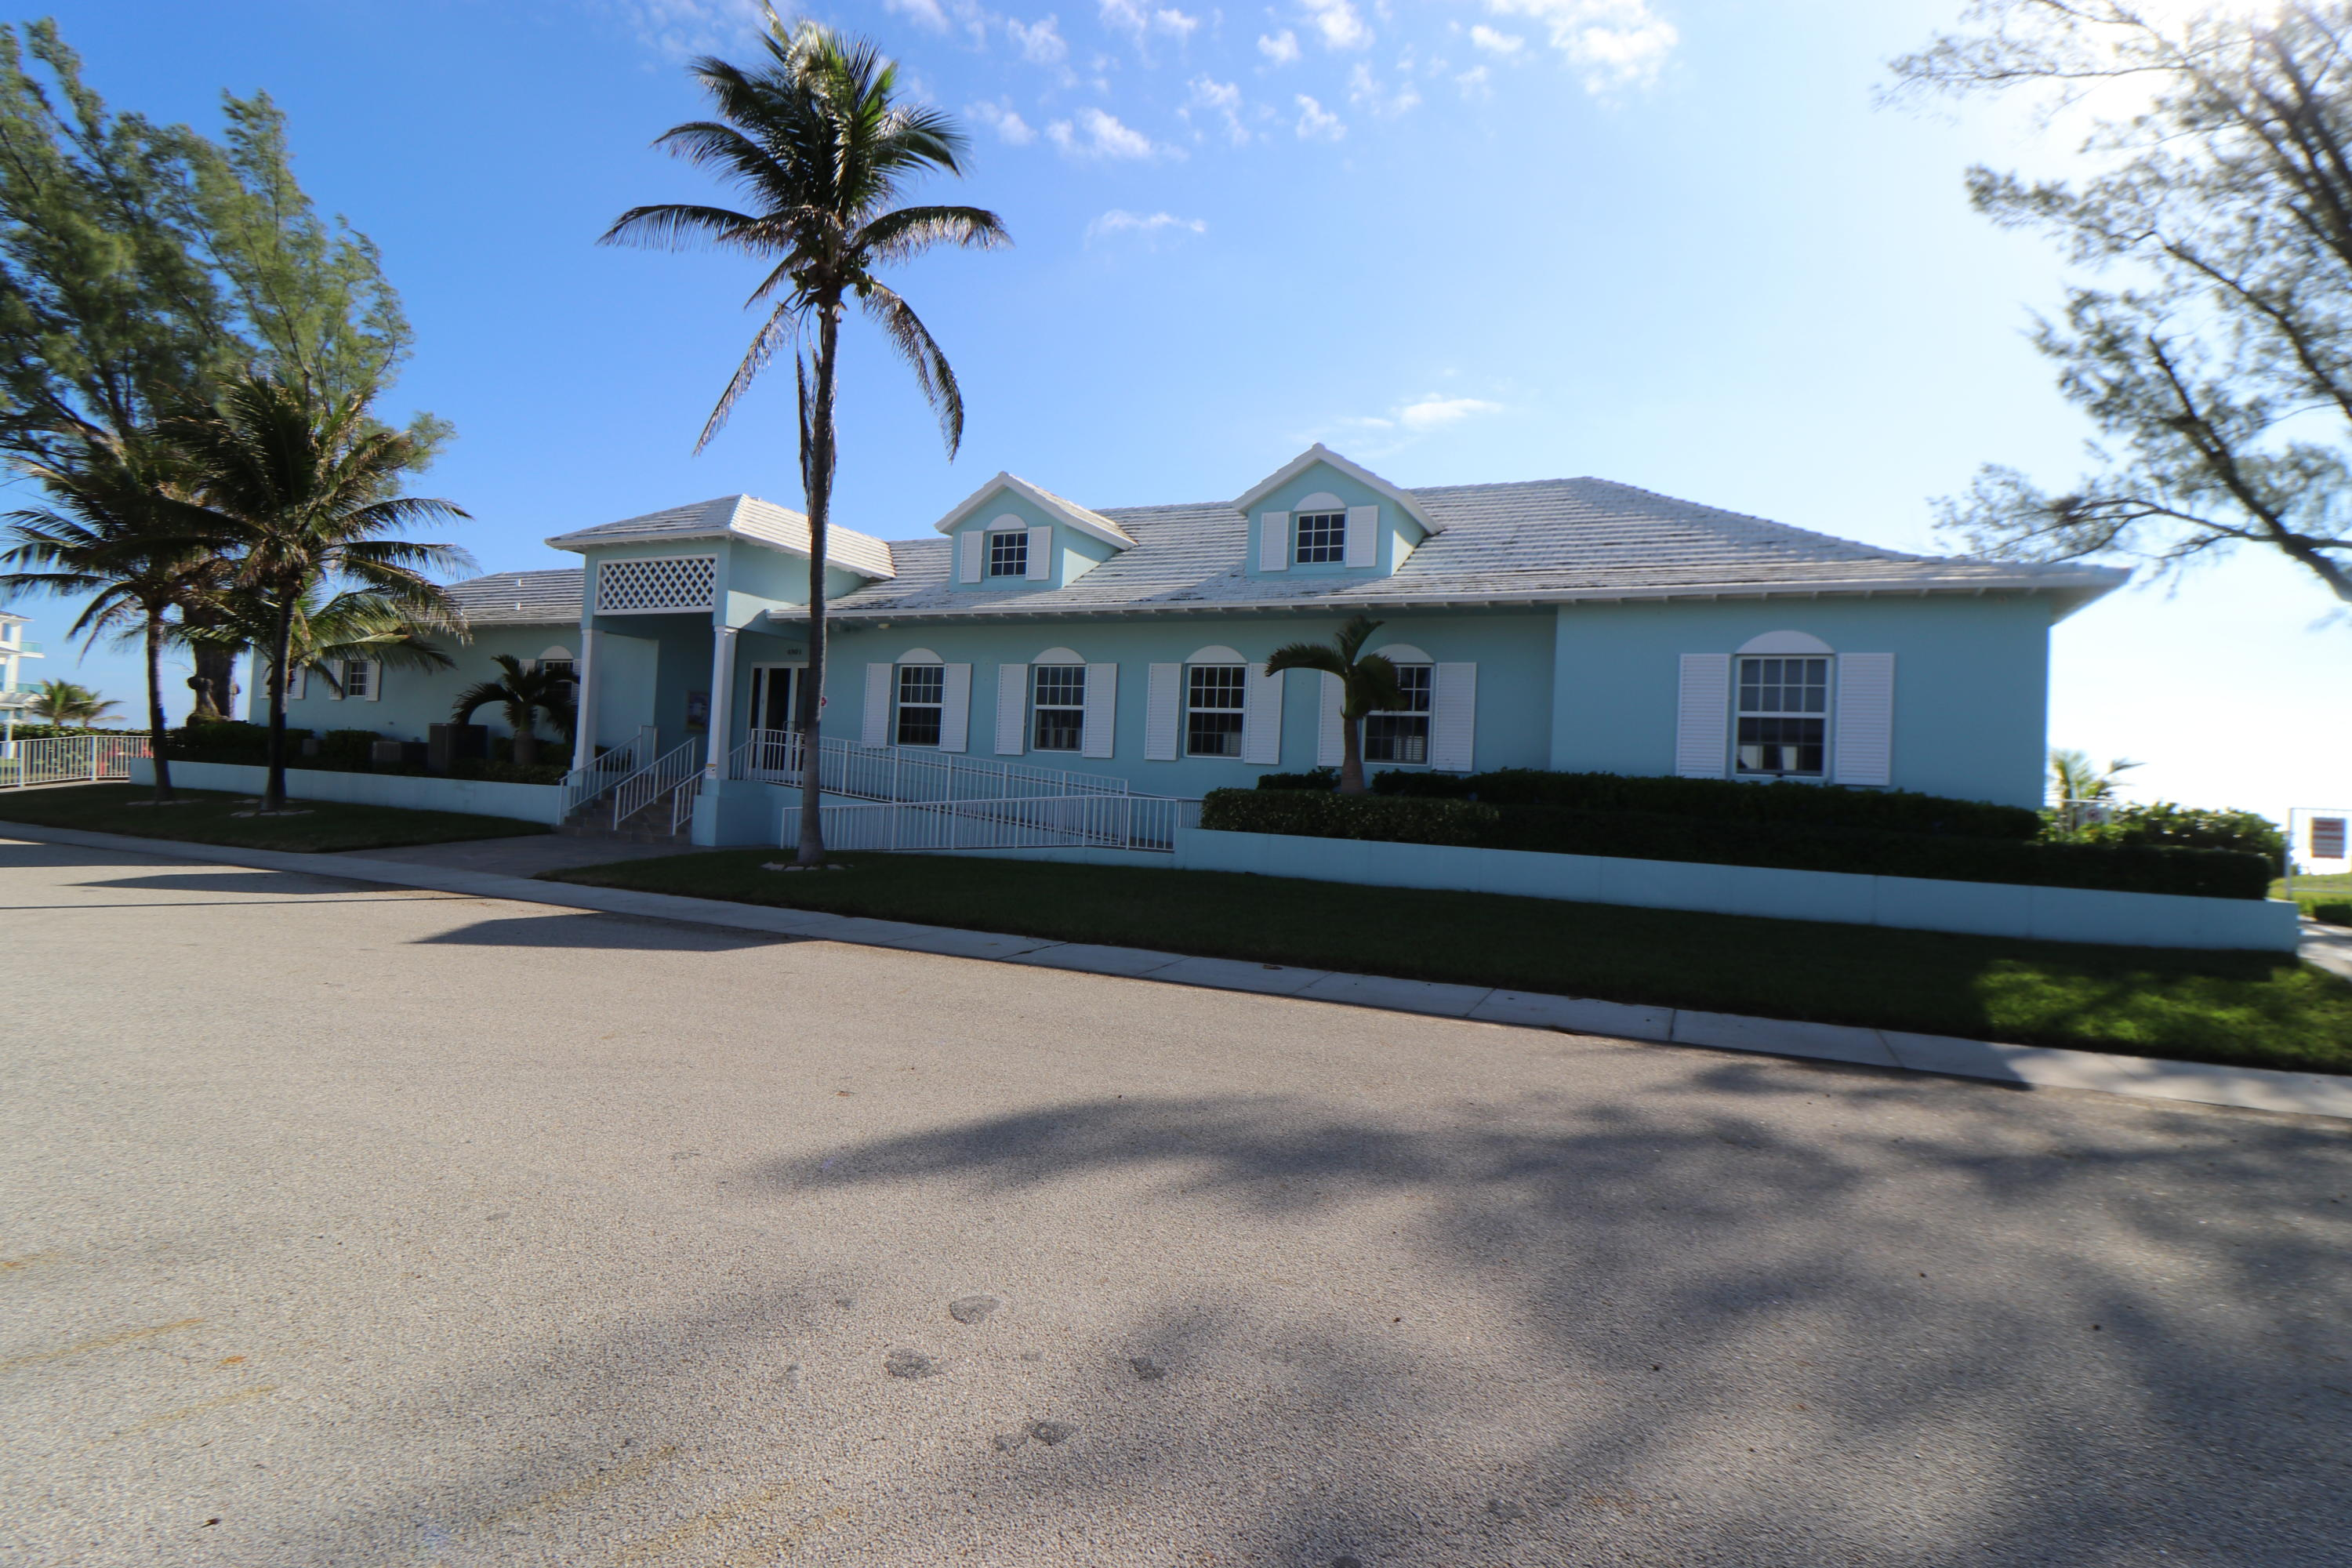 Briny Oceanfront CLubhouse